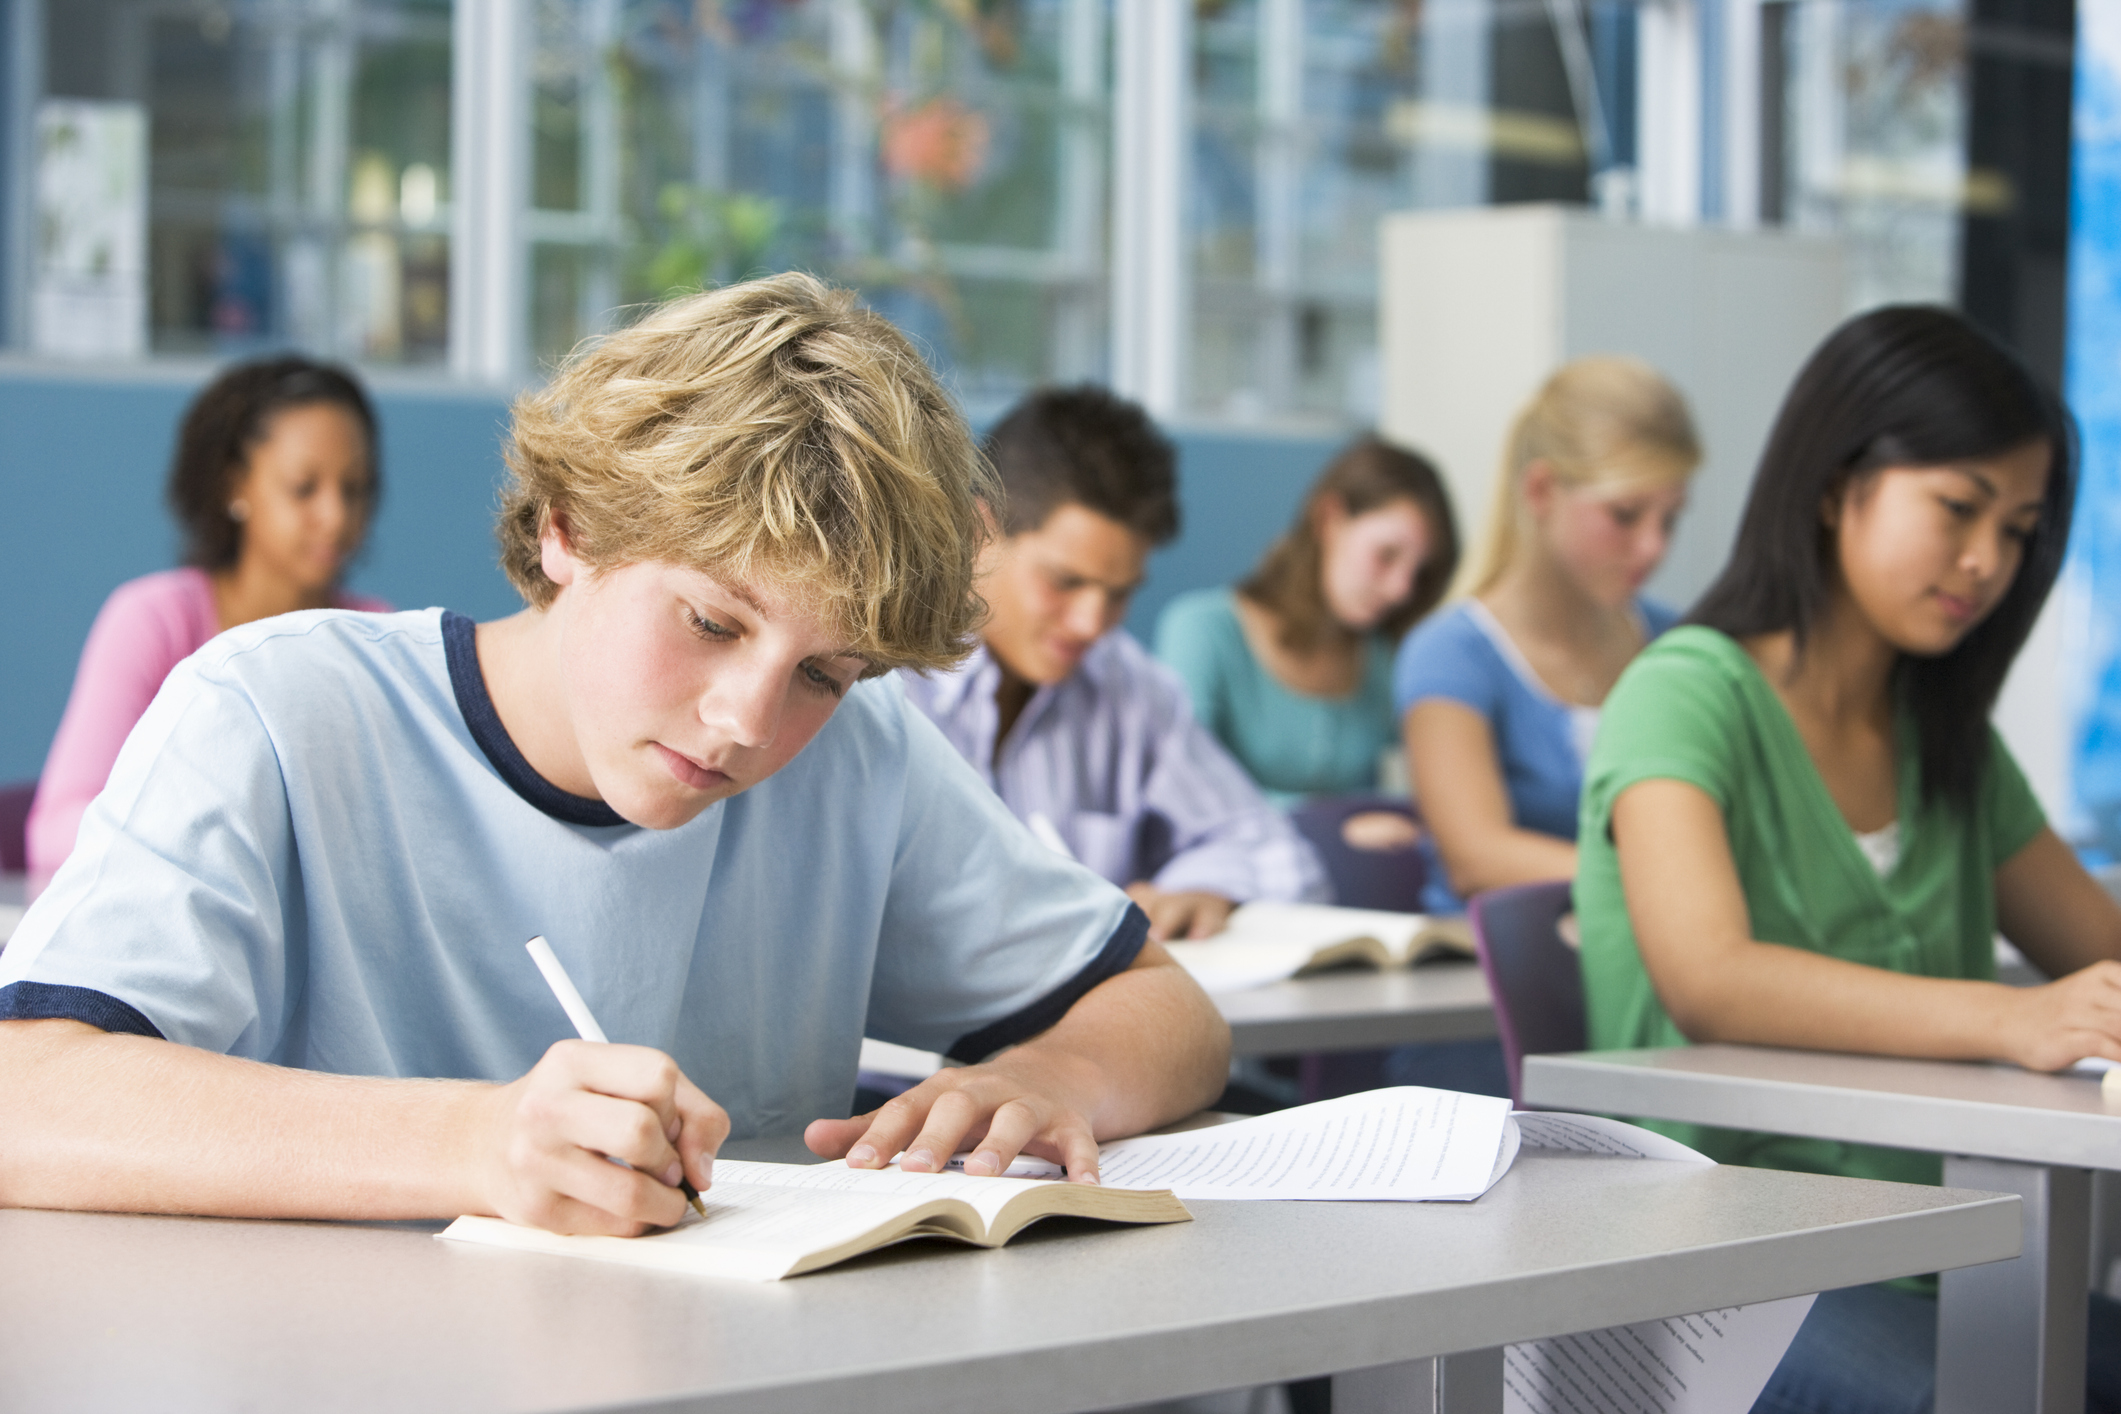 skipping school and responsibility of students The interviews revealed that most students face few or minor immediate consequences for skipping school, and many do not think missing class impacts their grades, their chances of graduating, or whether they'll attend college.